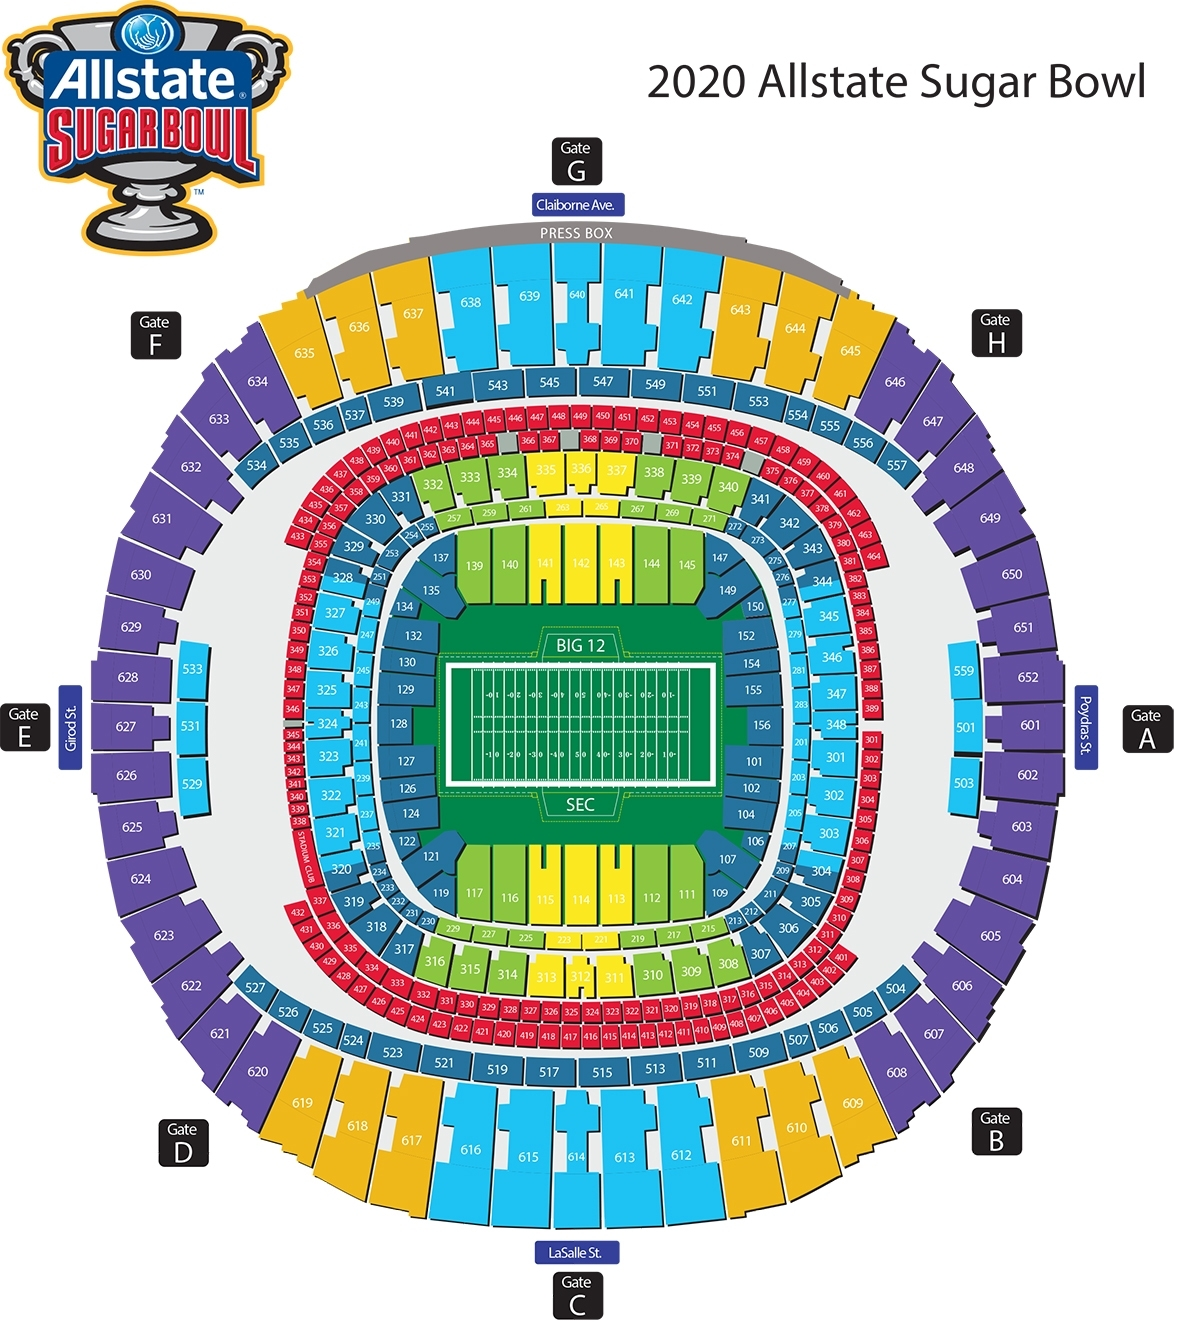 Seating Diagram - Official Site Of The Allstate Sugar Bowl with regard to Super Bowl Seating Chart Prices